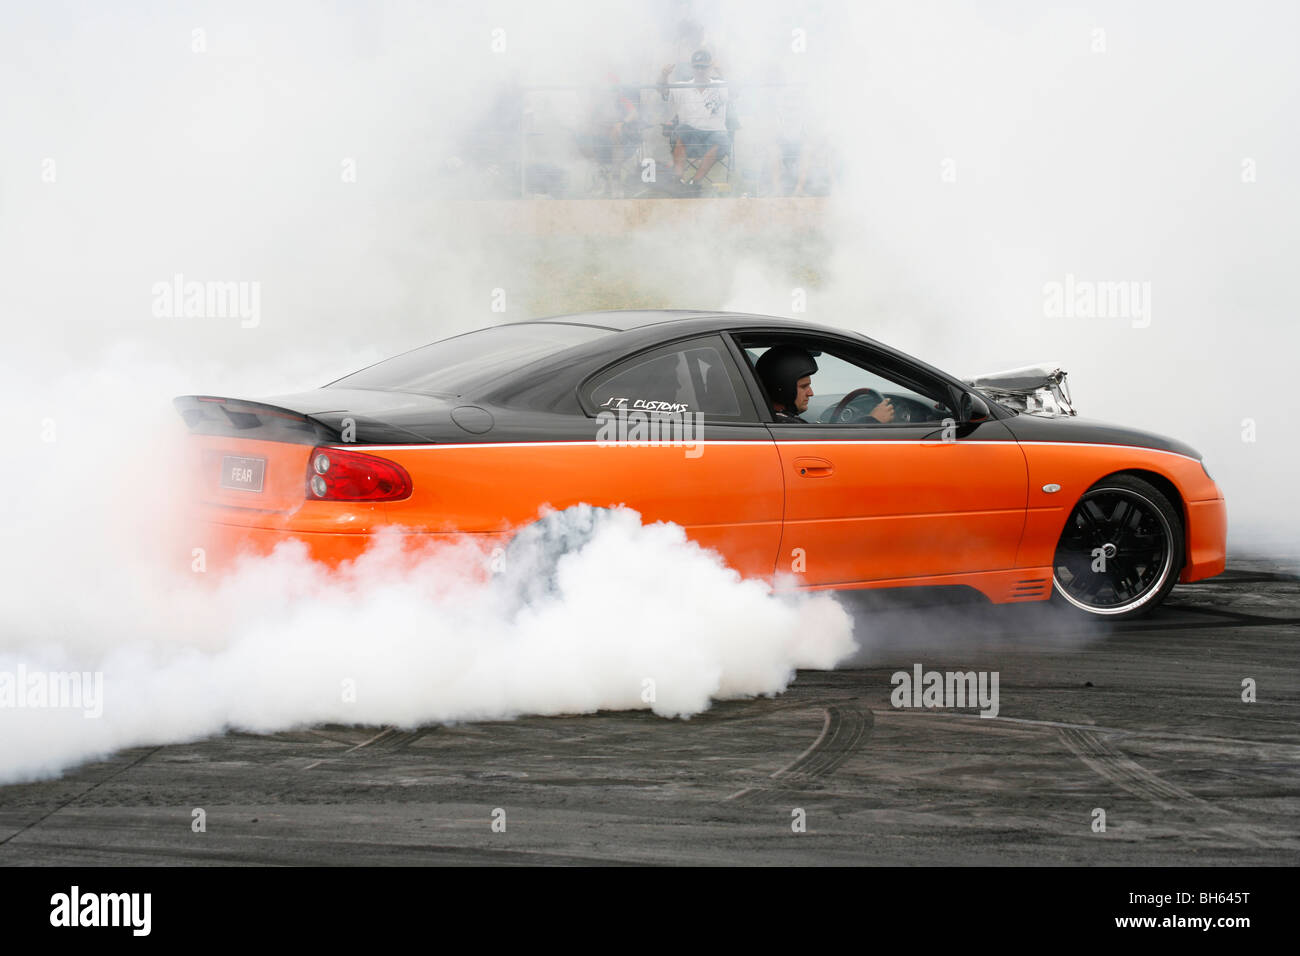 Australian burnout specialist, Fred Watson, performing a massive burnout in his Holden Monaro dubbed 'FEAR'. - Stock Image